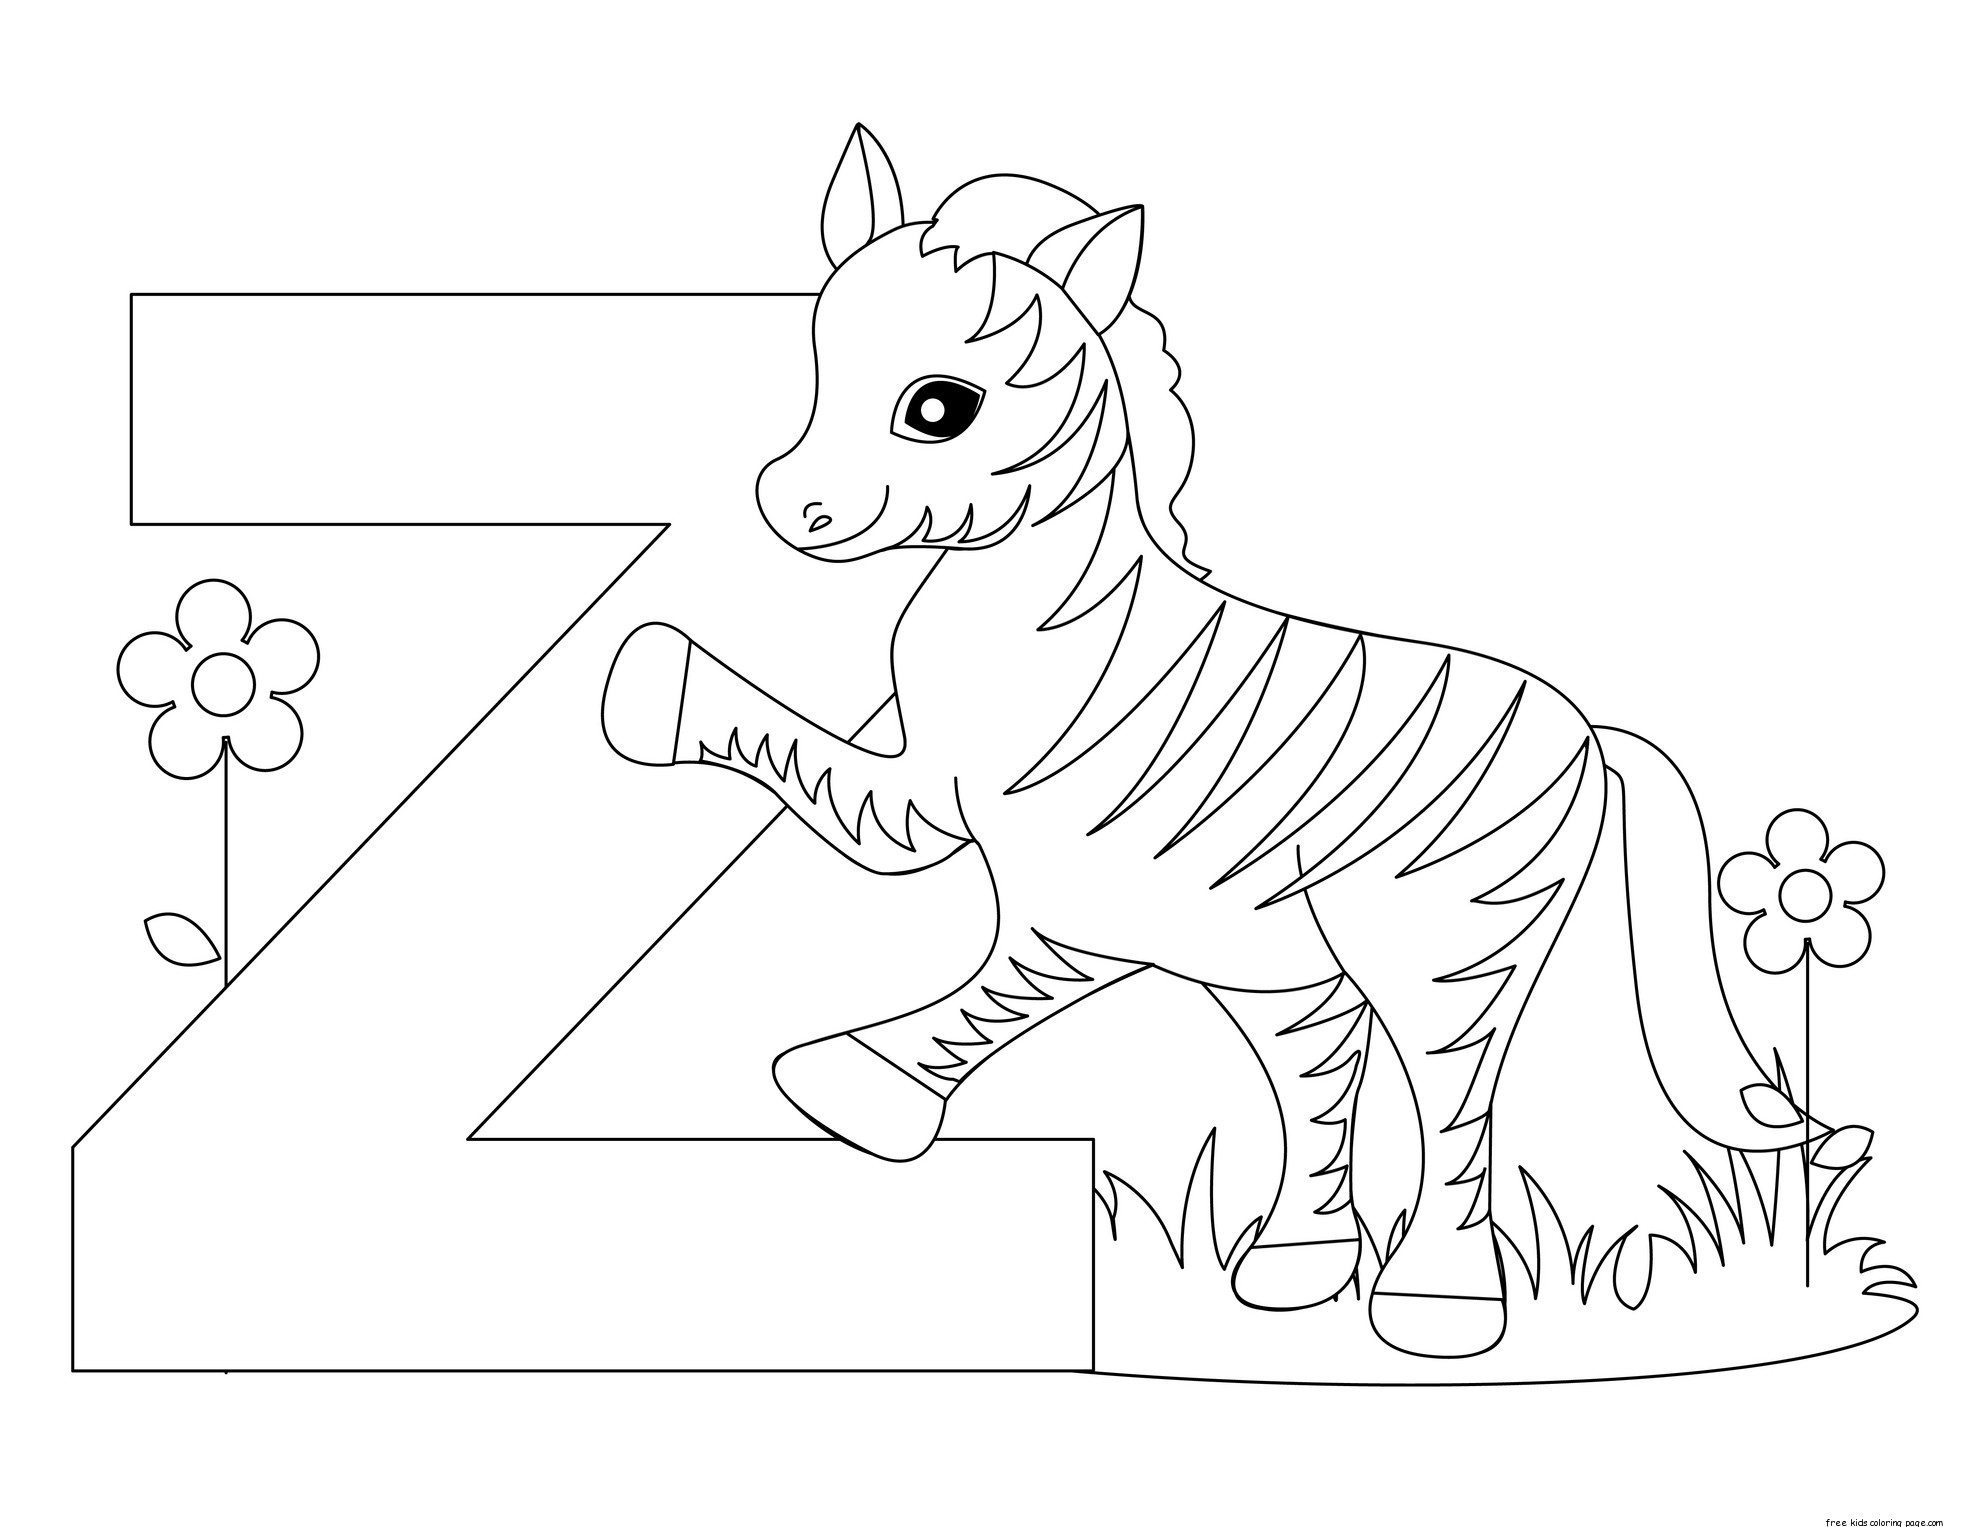 z coloring book pages - photo #13